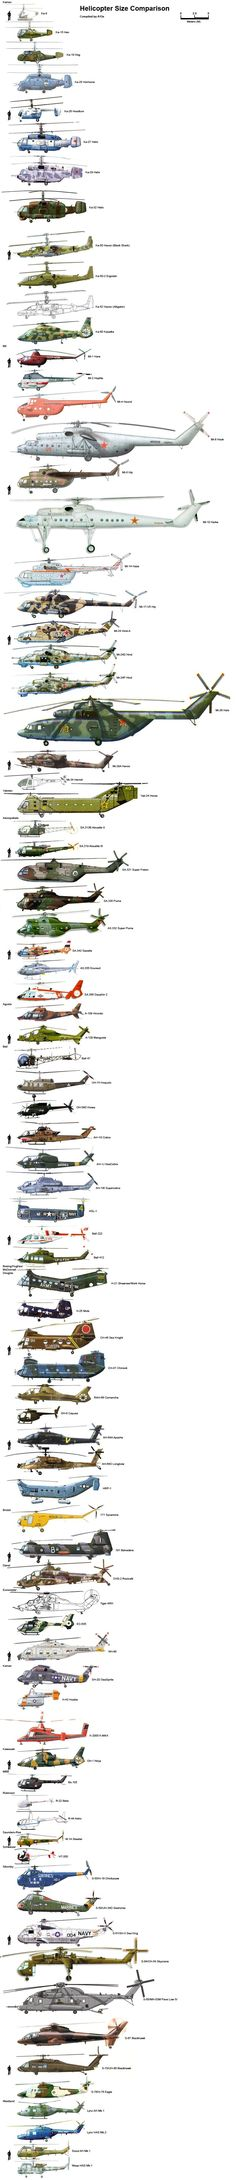 Helicopter comparison